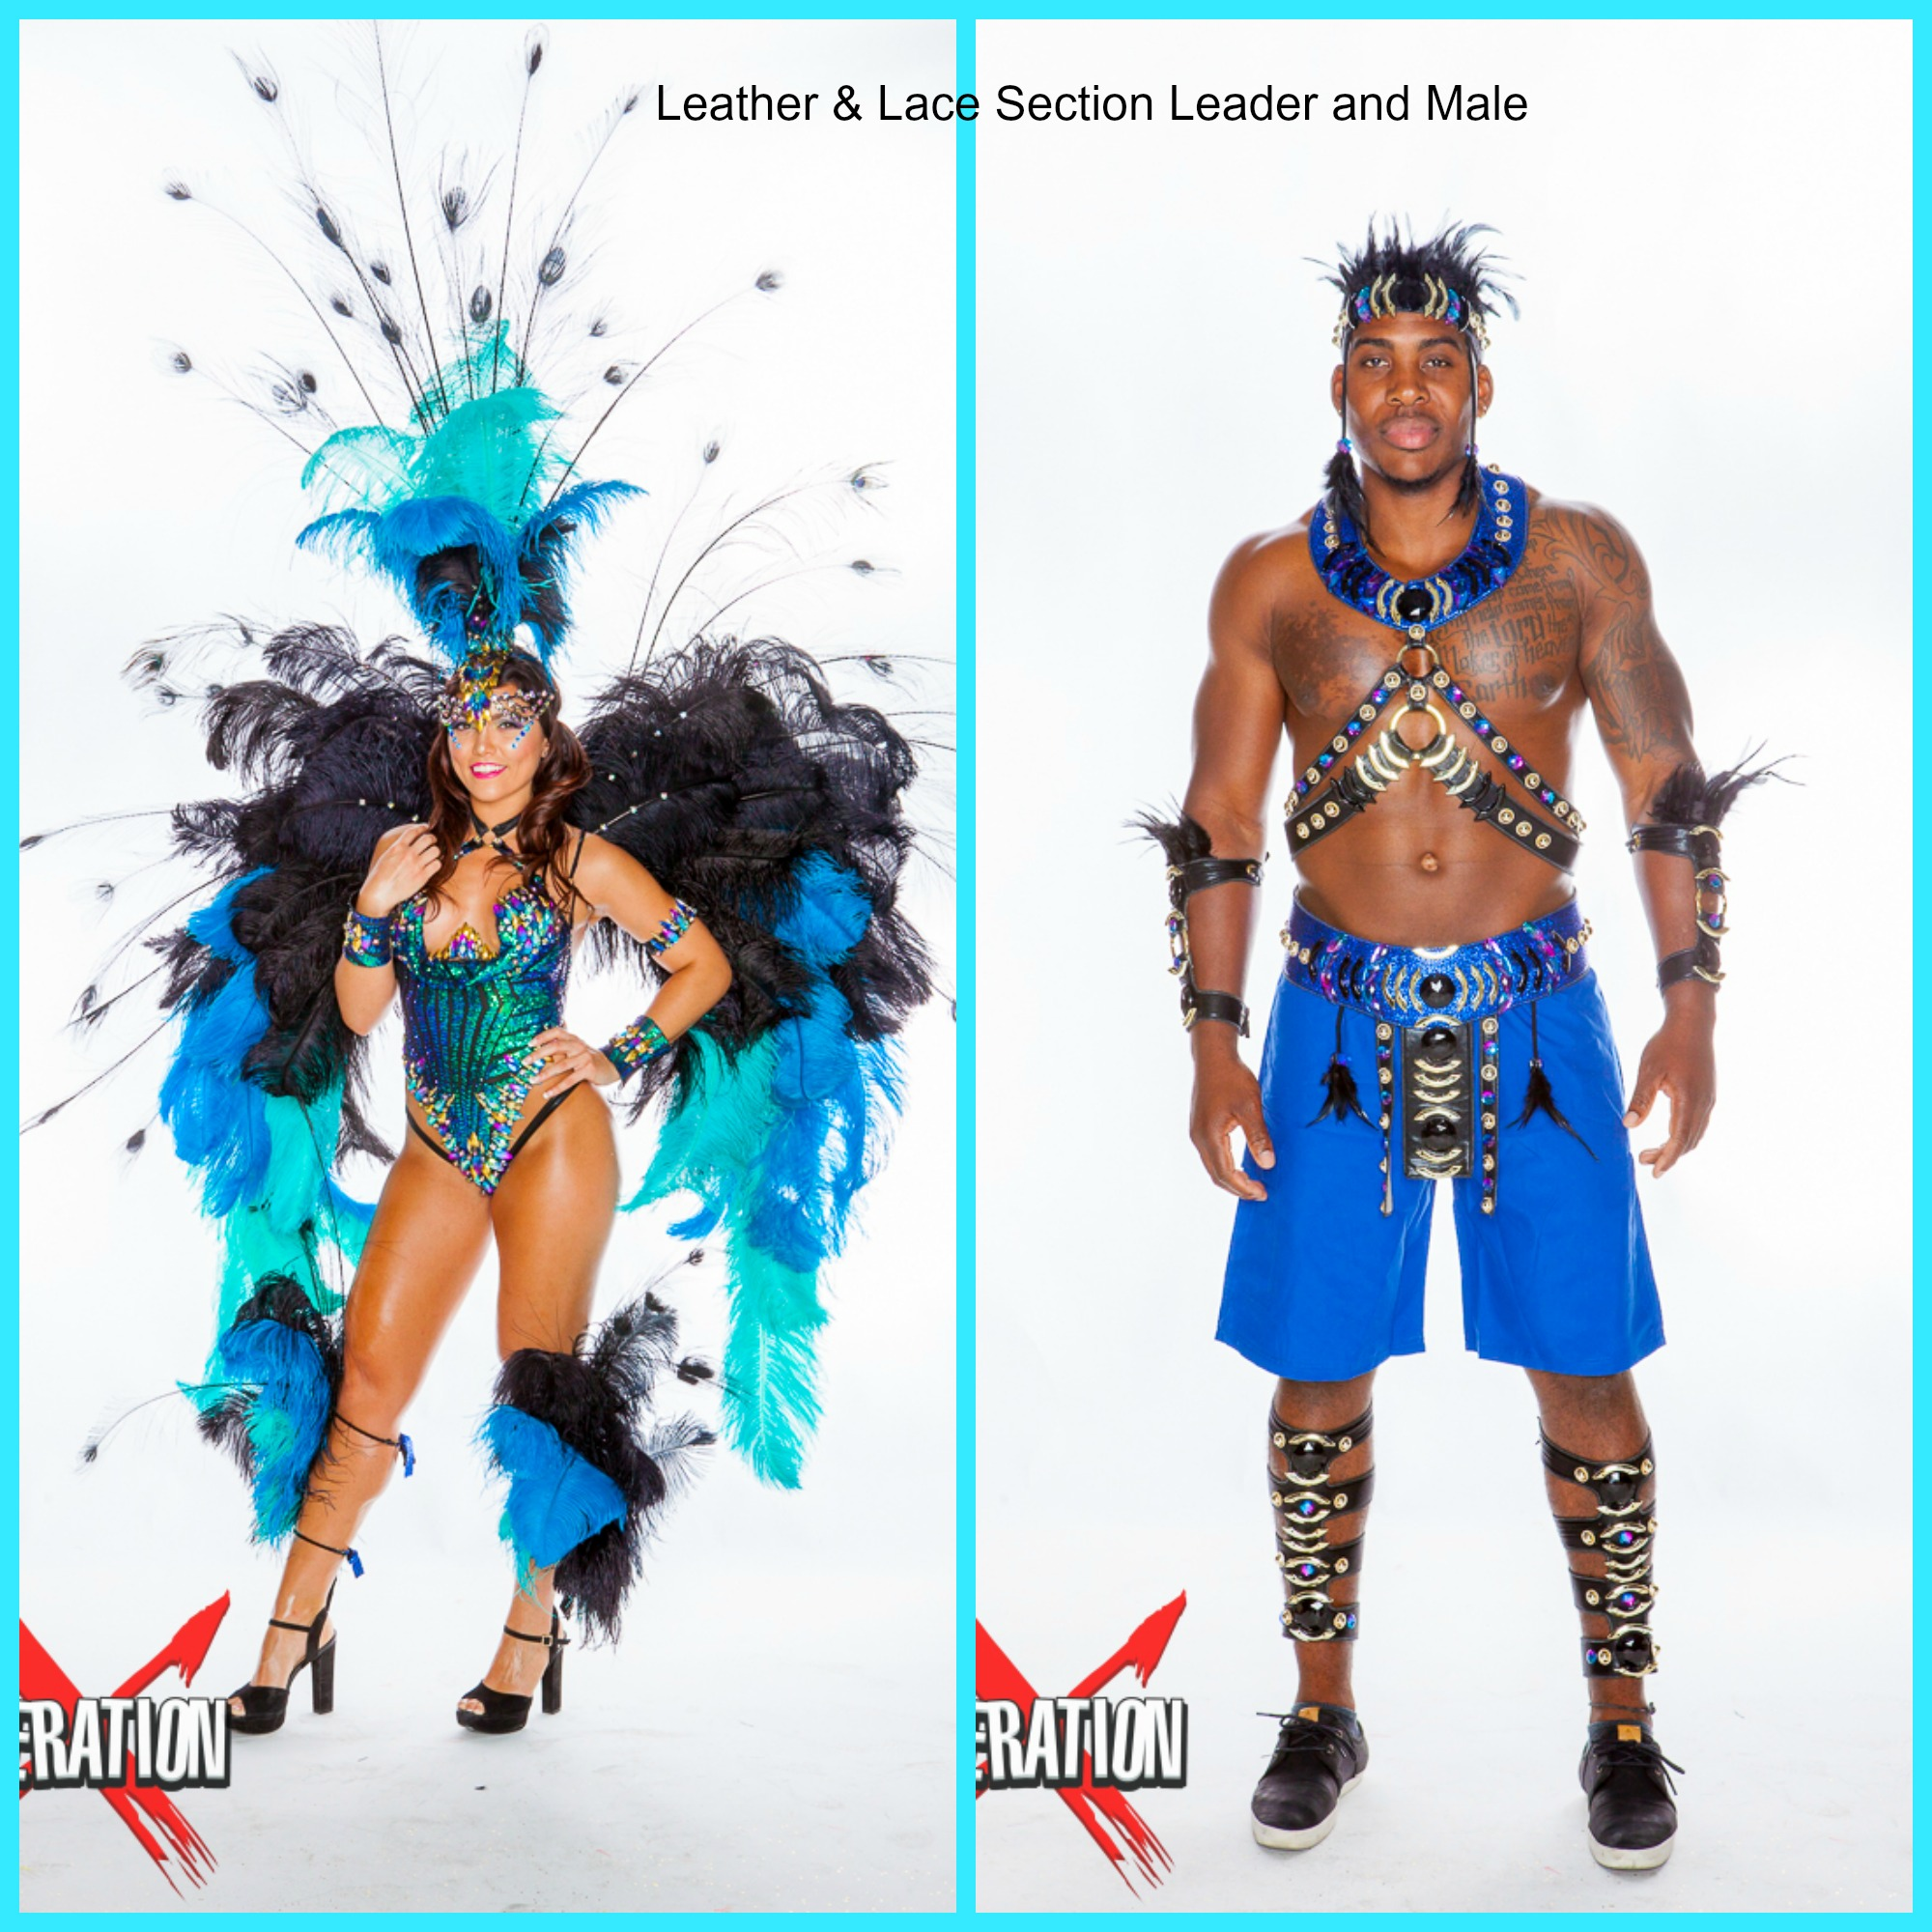 Leather & Lace SC & Male